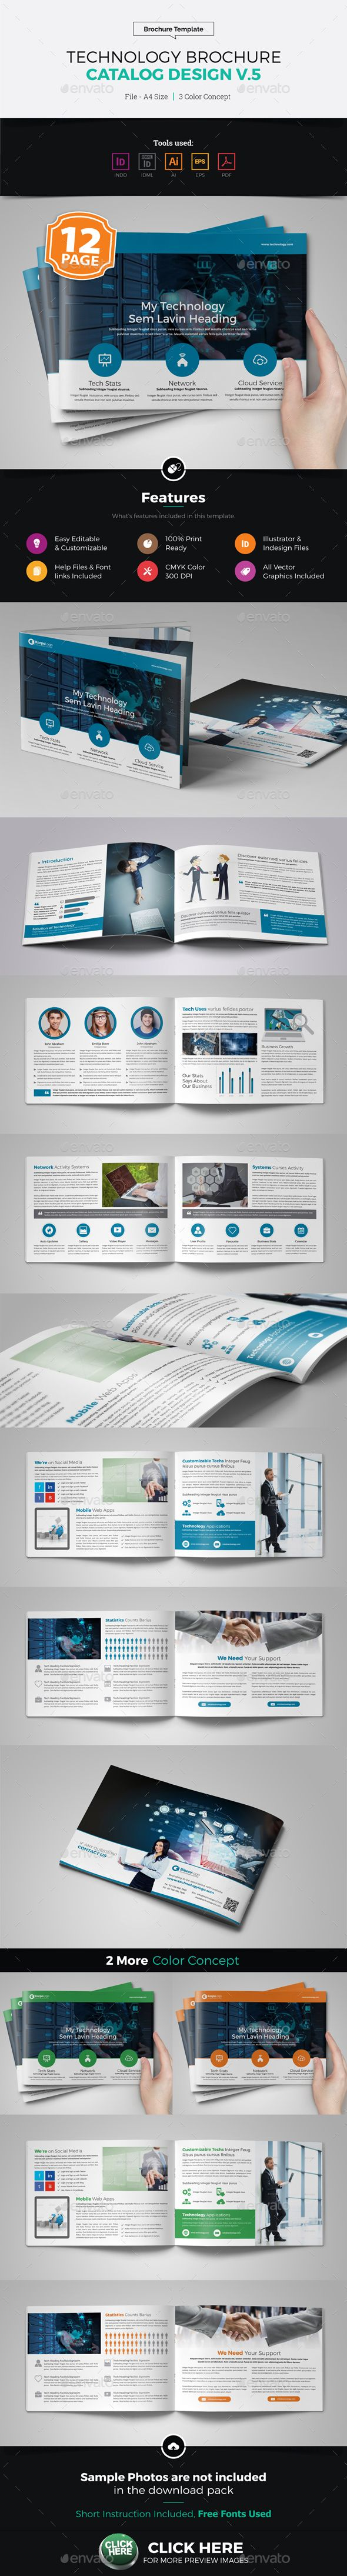 Technology Brochure Catalog Design v5 — Vector EPS #wifi bifold brochure #bifold brochure • Download ➝ https://graphicriver.net/item/technology-brochure-catalog-design-v5/19410581?ref=pxcr